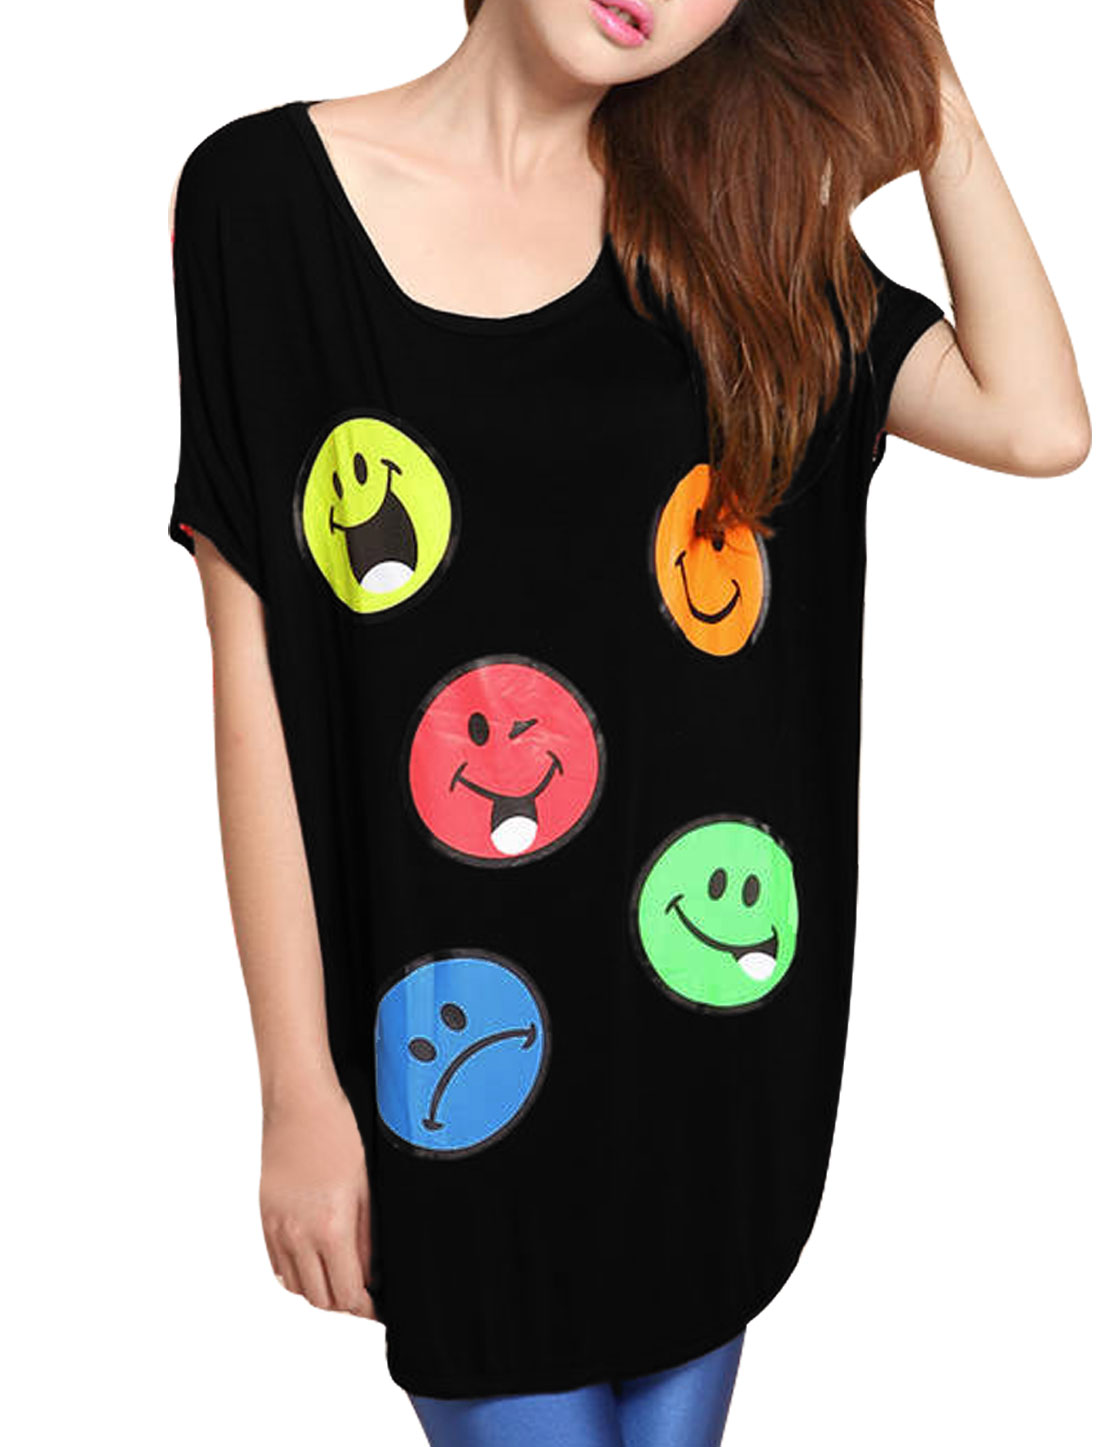 Lady Red Smile Face Print Round Neck Back Cutout Loose Tee Shirt L